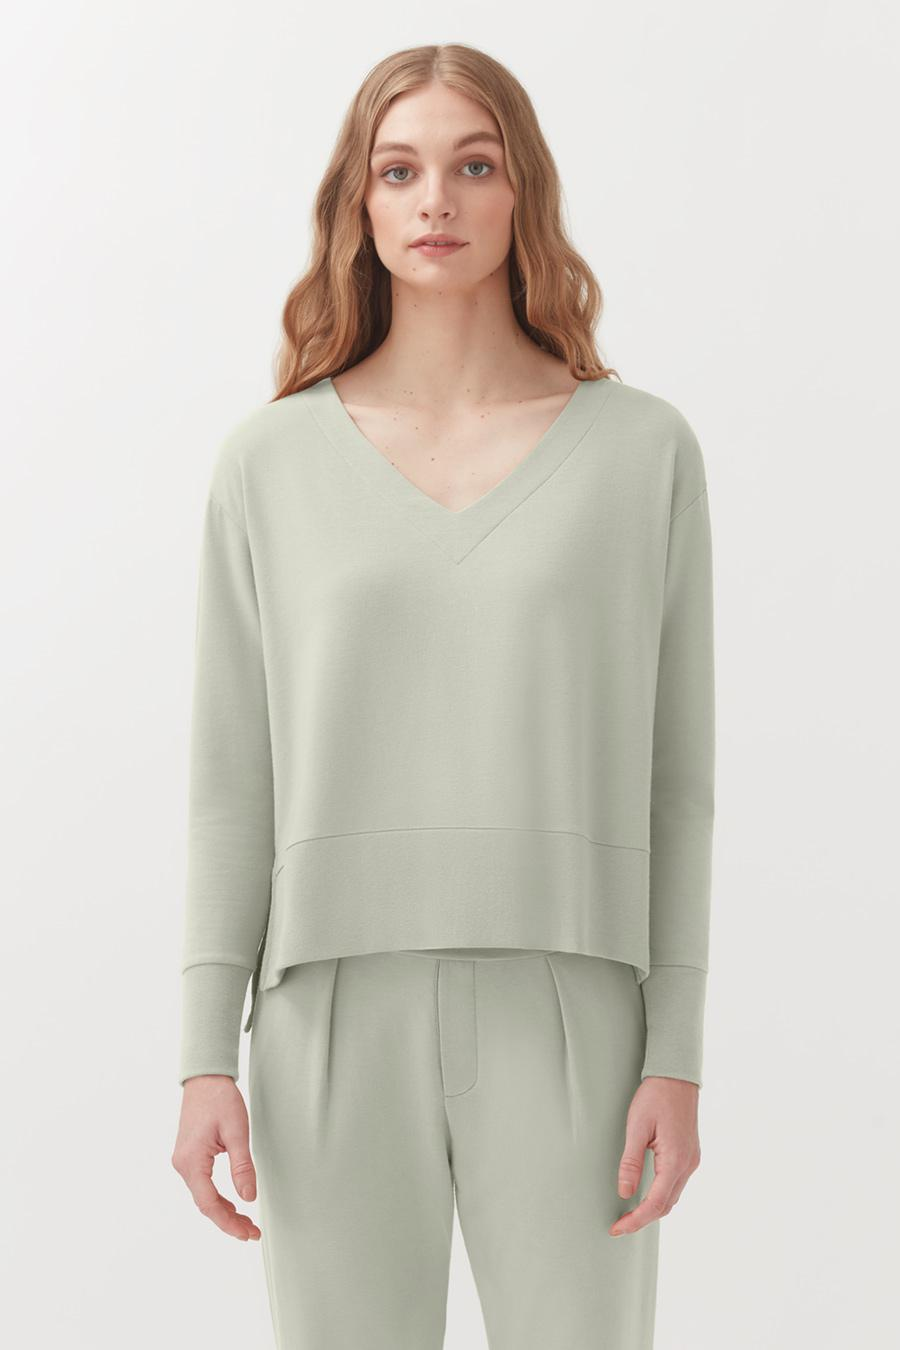 Women's French Terry V-Neck Sweatshirt in Sage | Size: 1